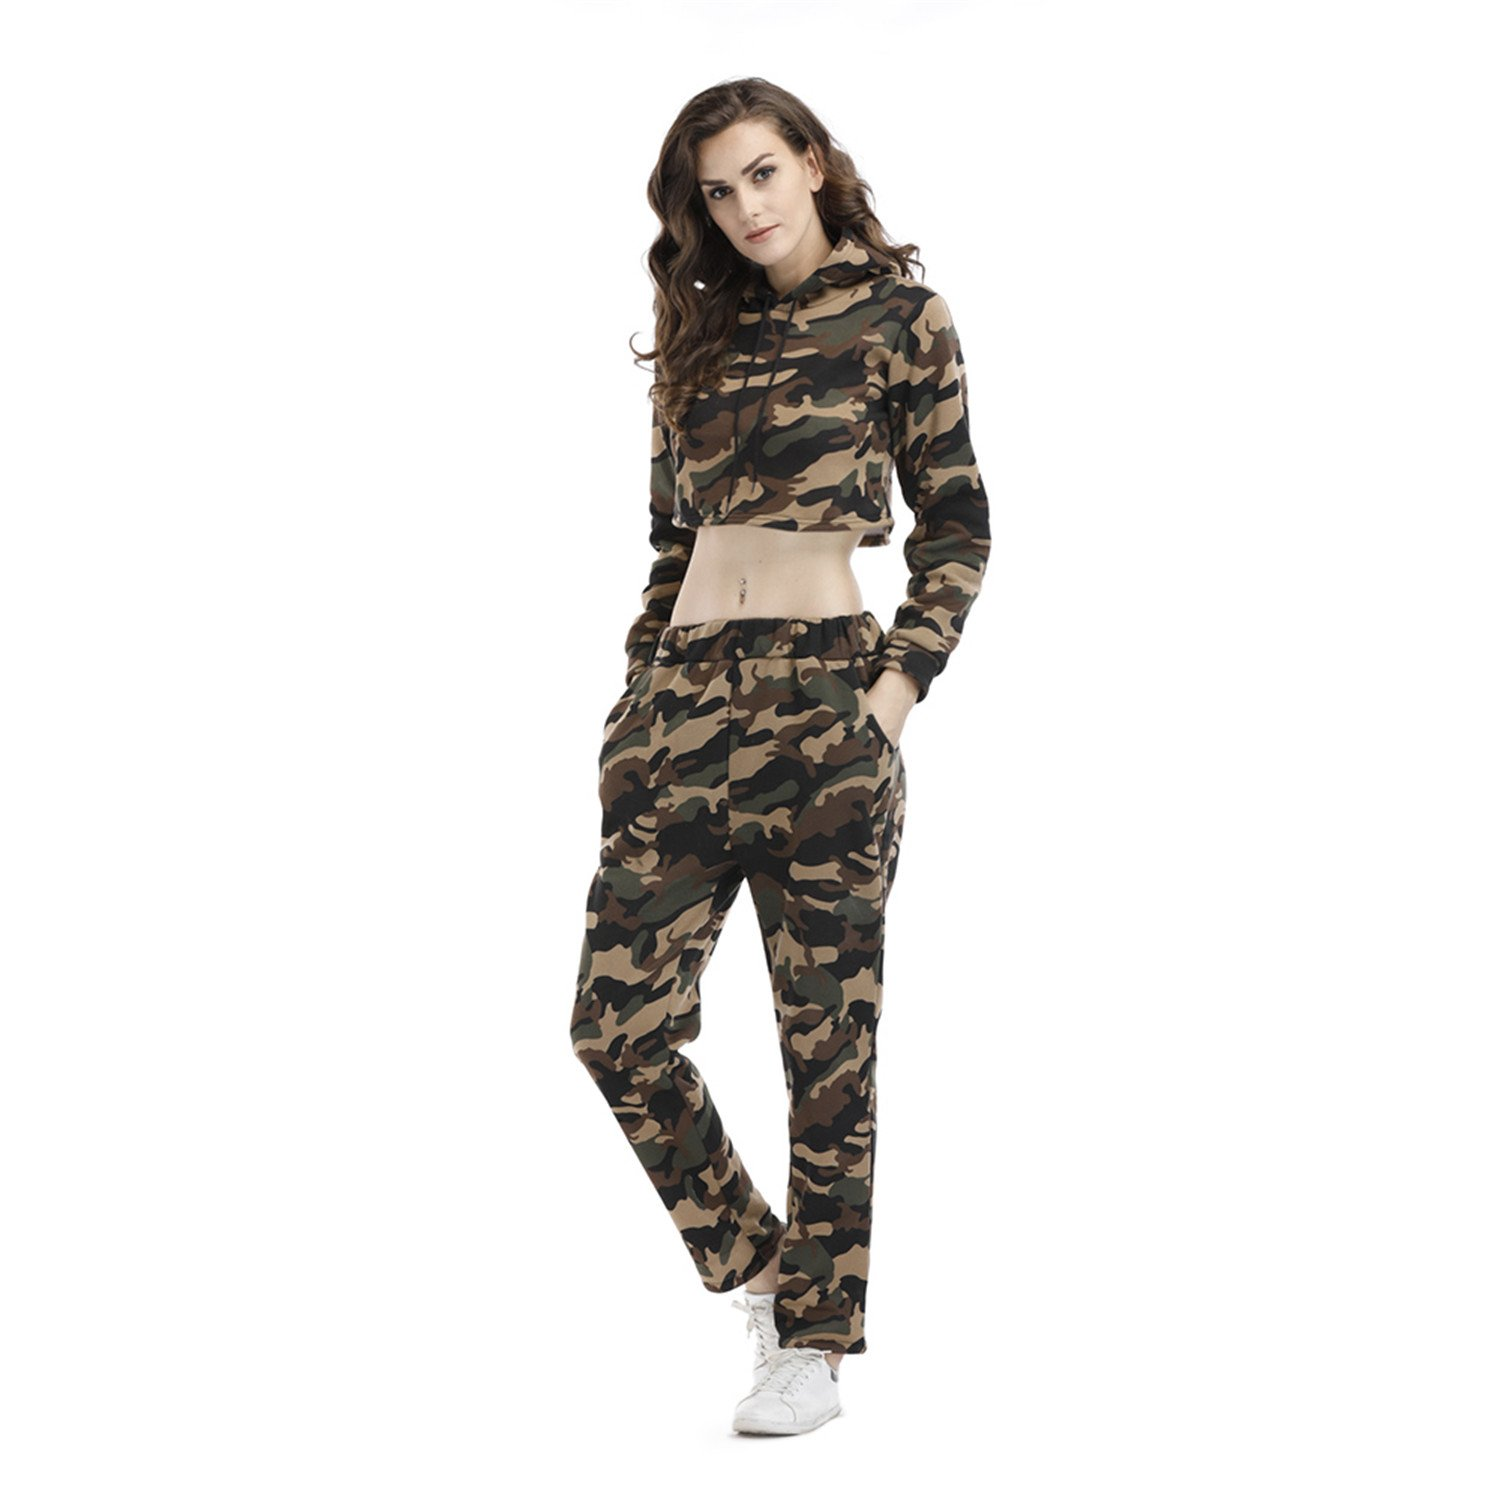 2 Pcs Military Camo Camouflage Hood Hooded Hoodie Sweatshirt Cropped Crop Top Sweatpants Tracksuit Set at Amazon Womens Clothing store: